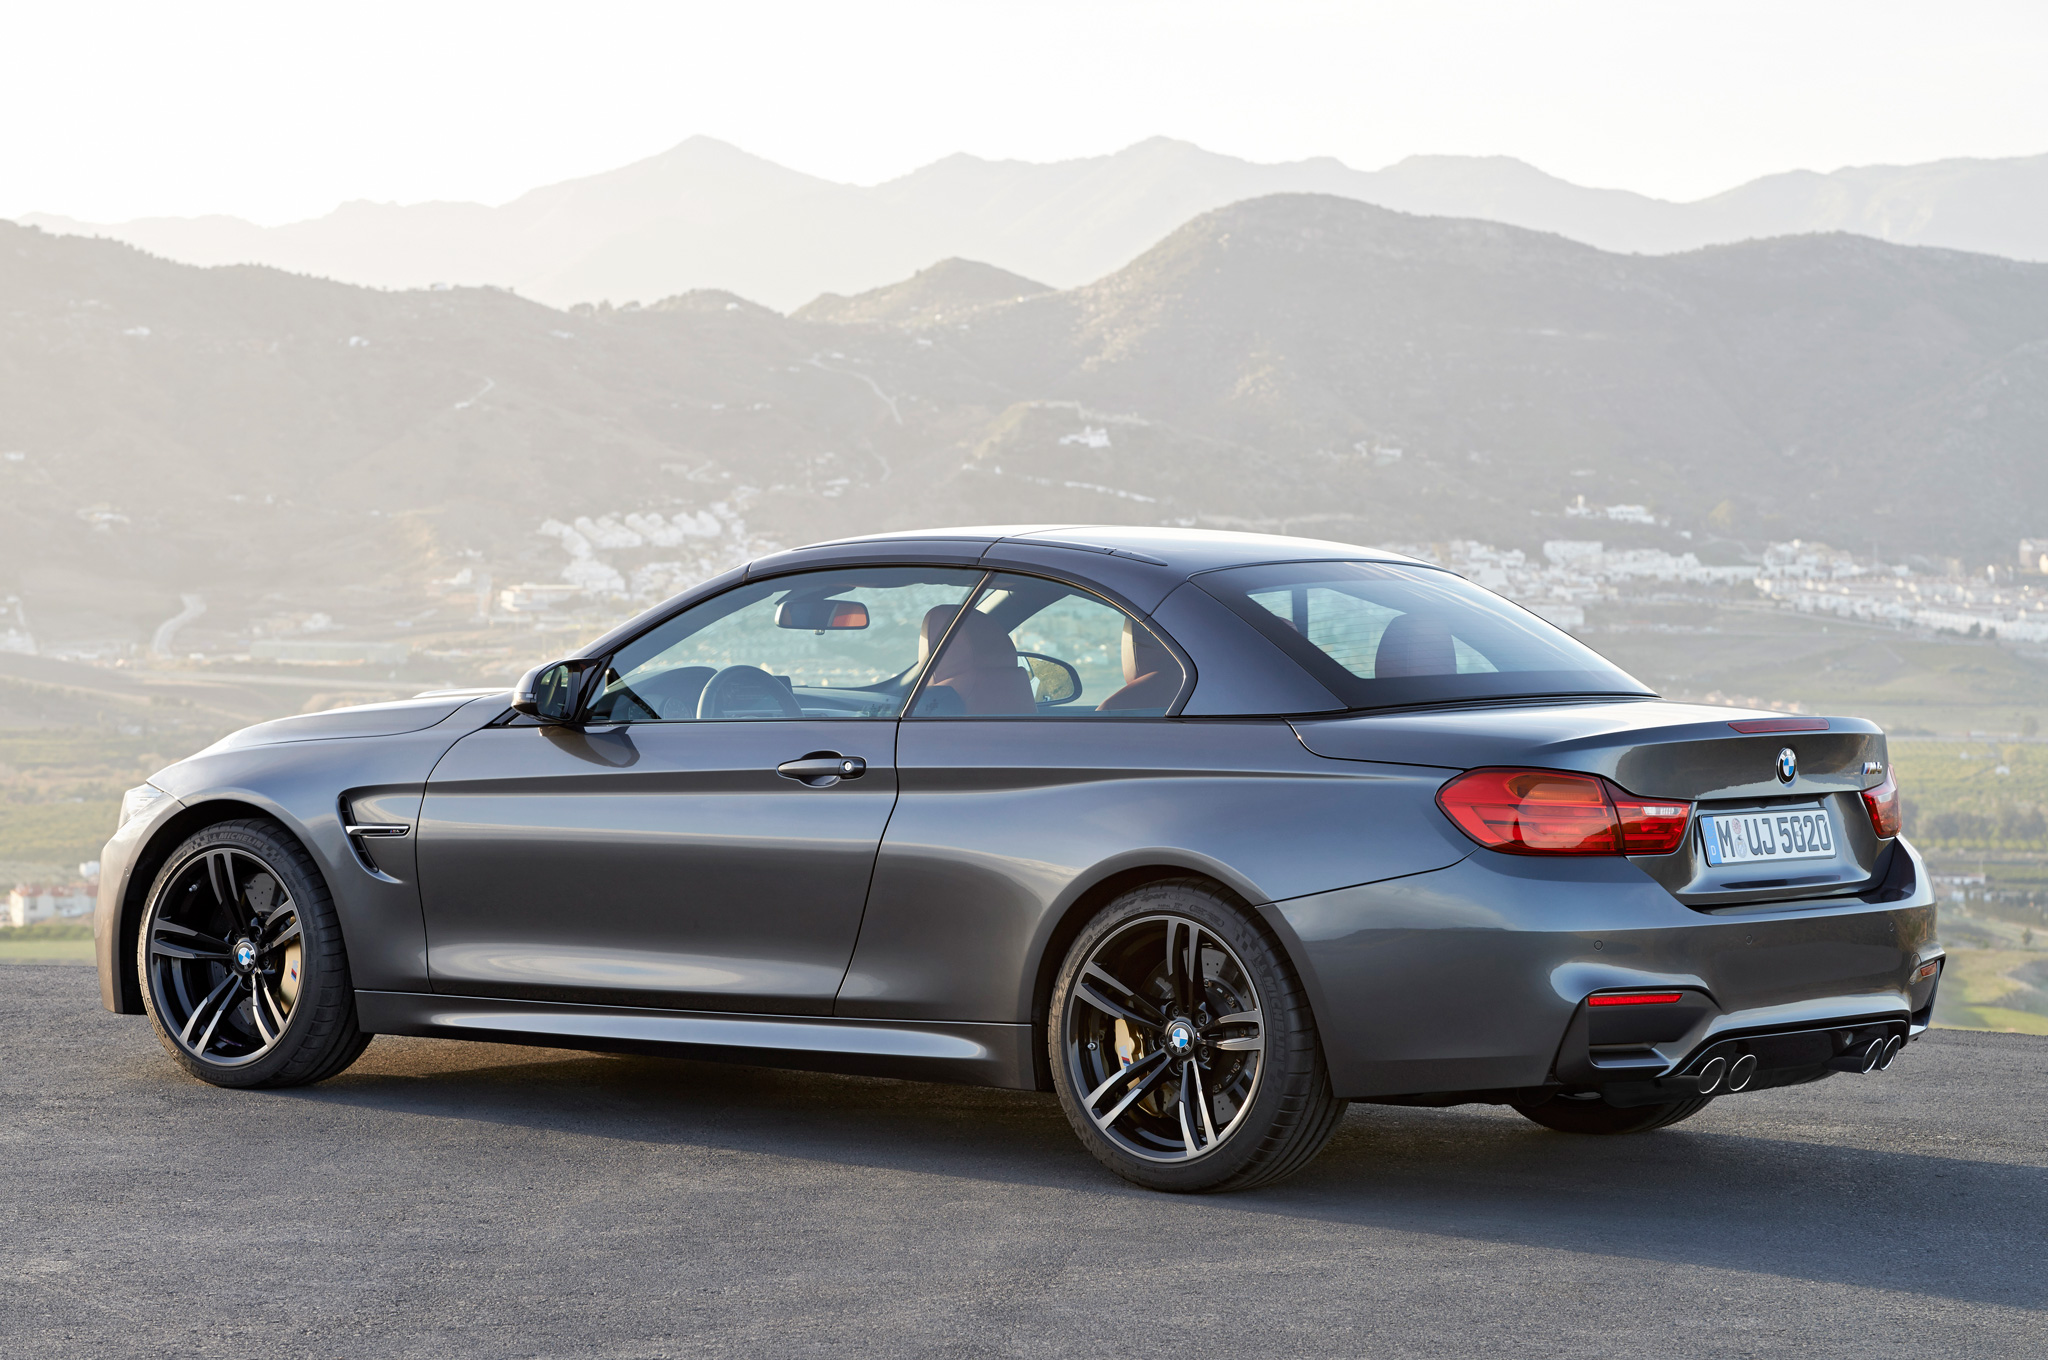 2015 Bmw M4 Convertible Top Up Rear Rear Side (Photo 49 of 50)